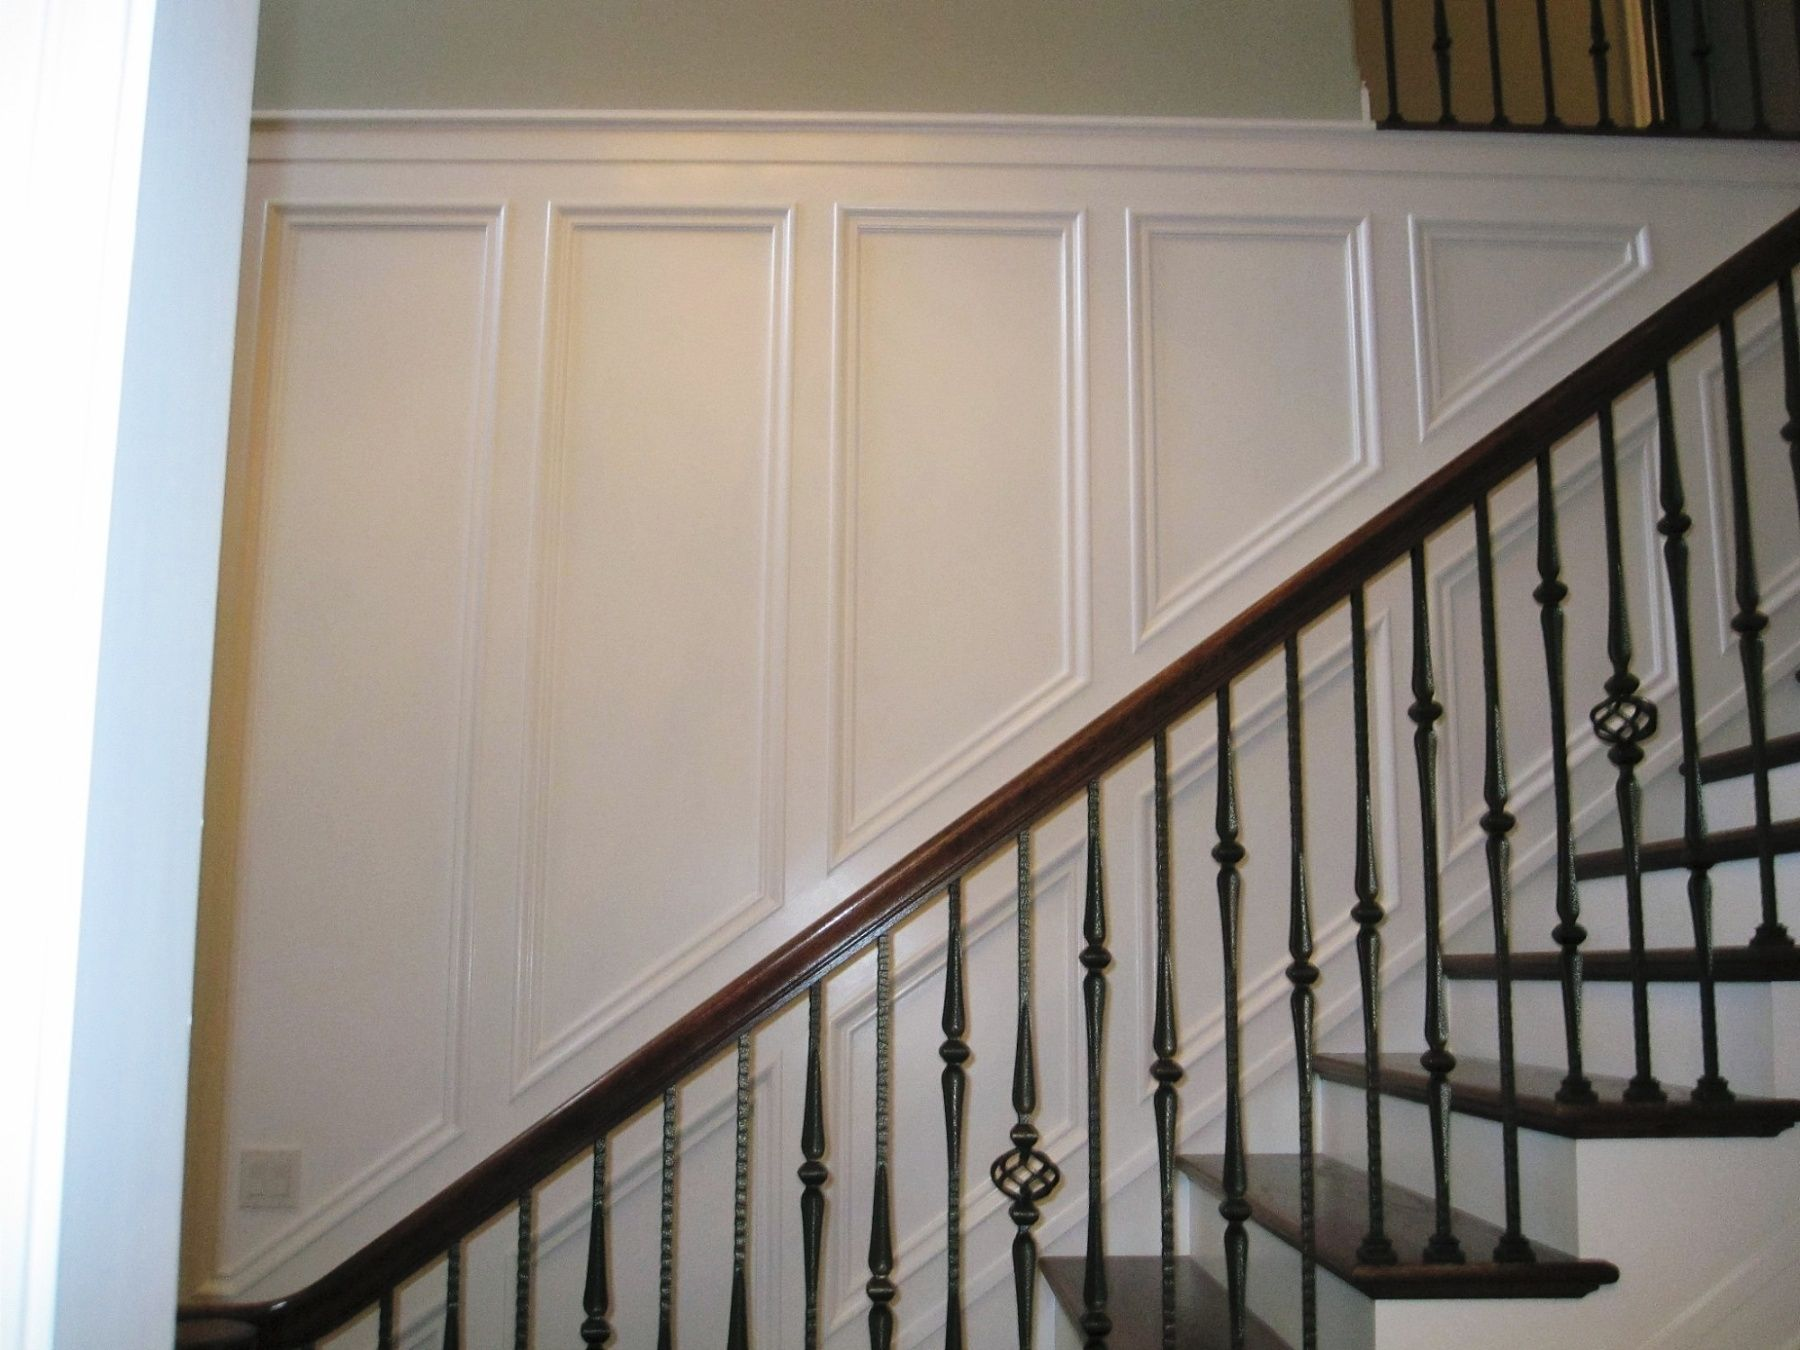 Wall Panelling With Chair Rail And Upper Section Feet Tall)